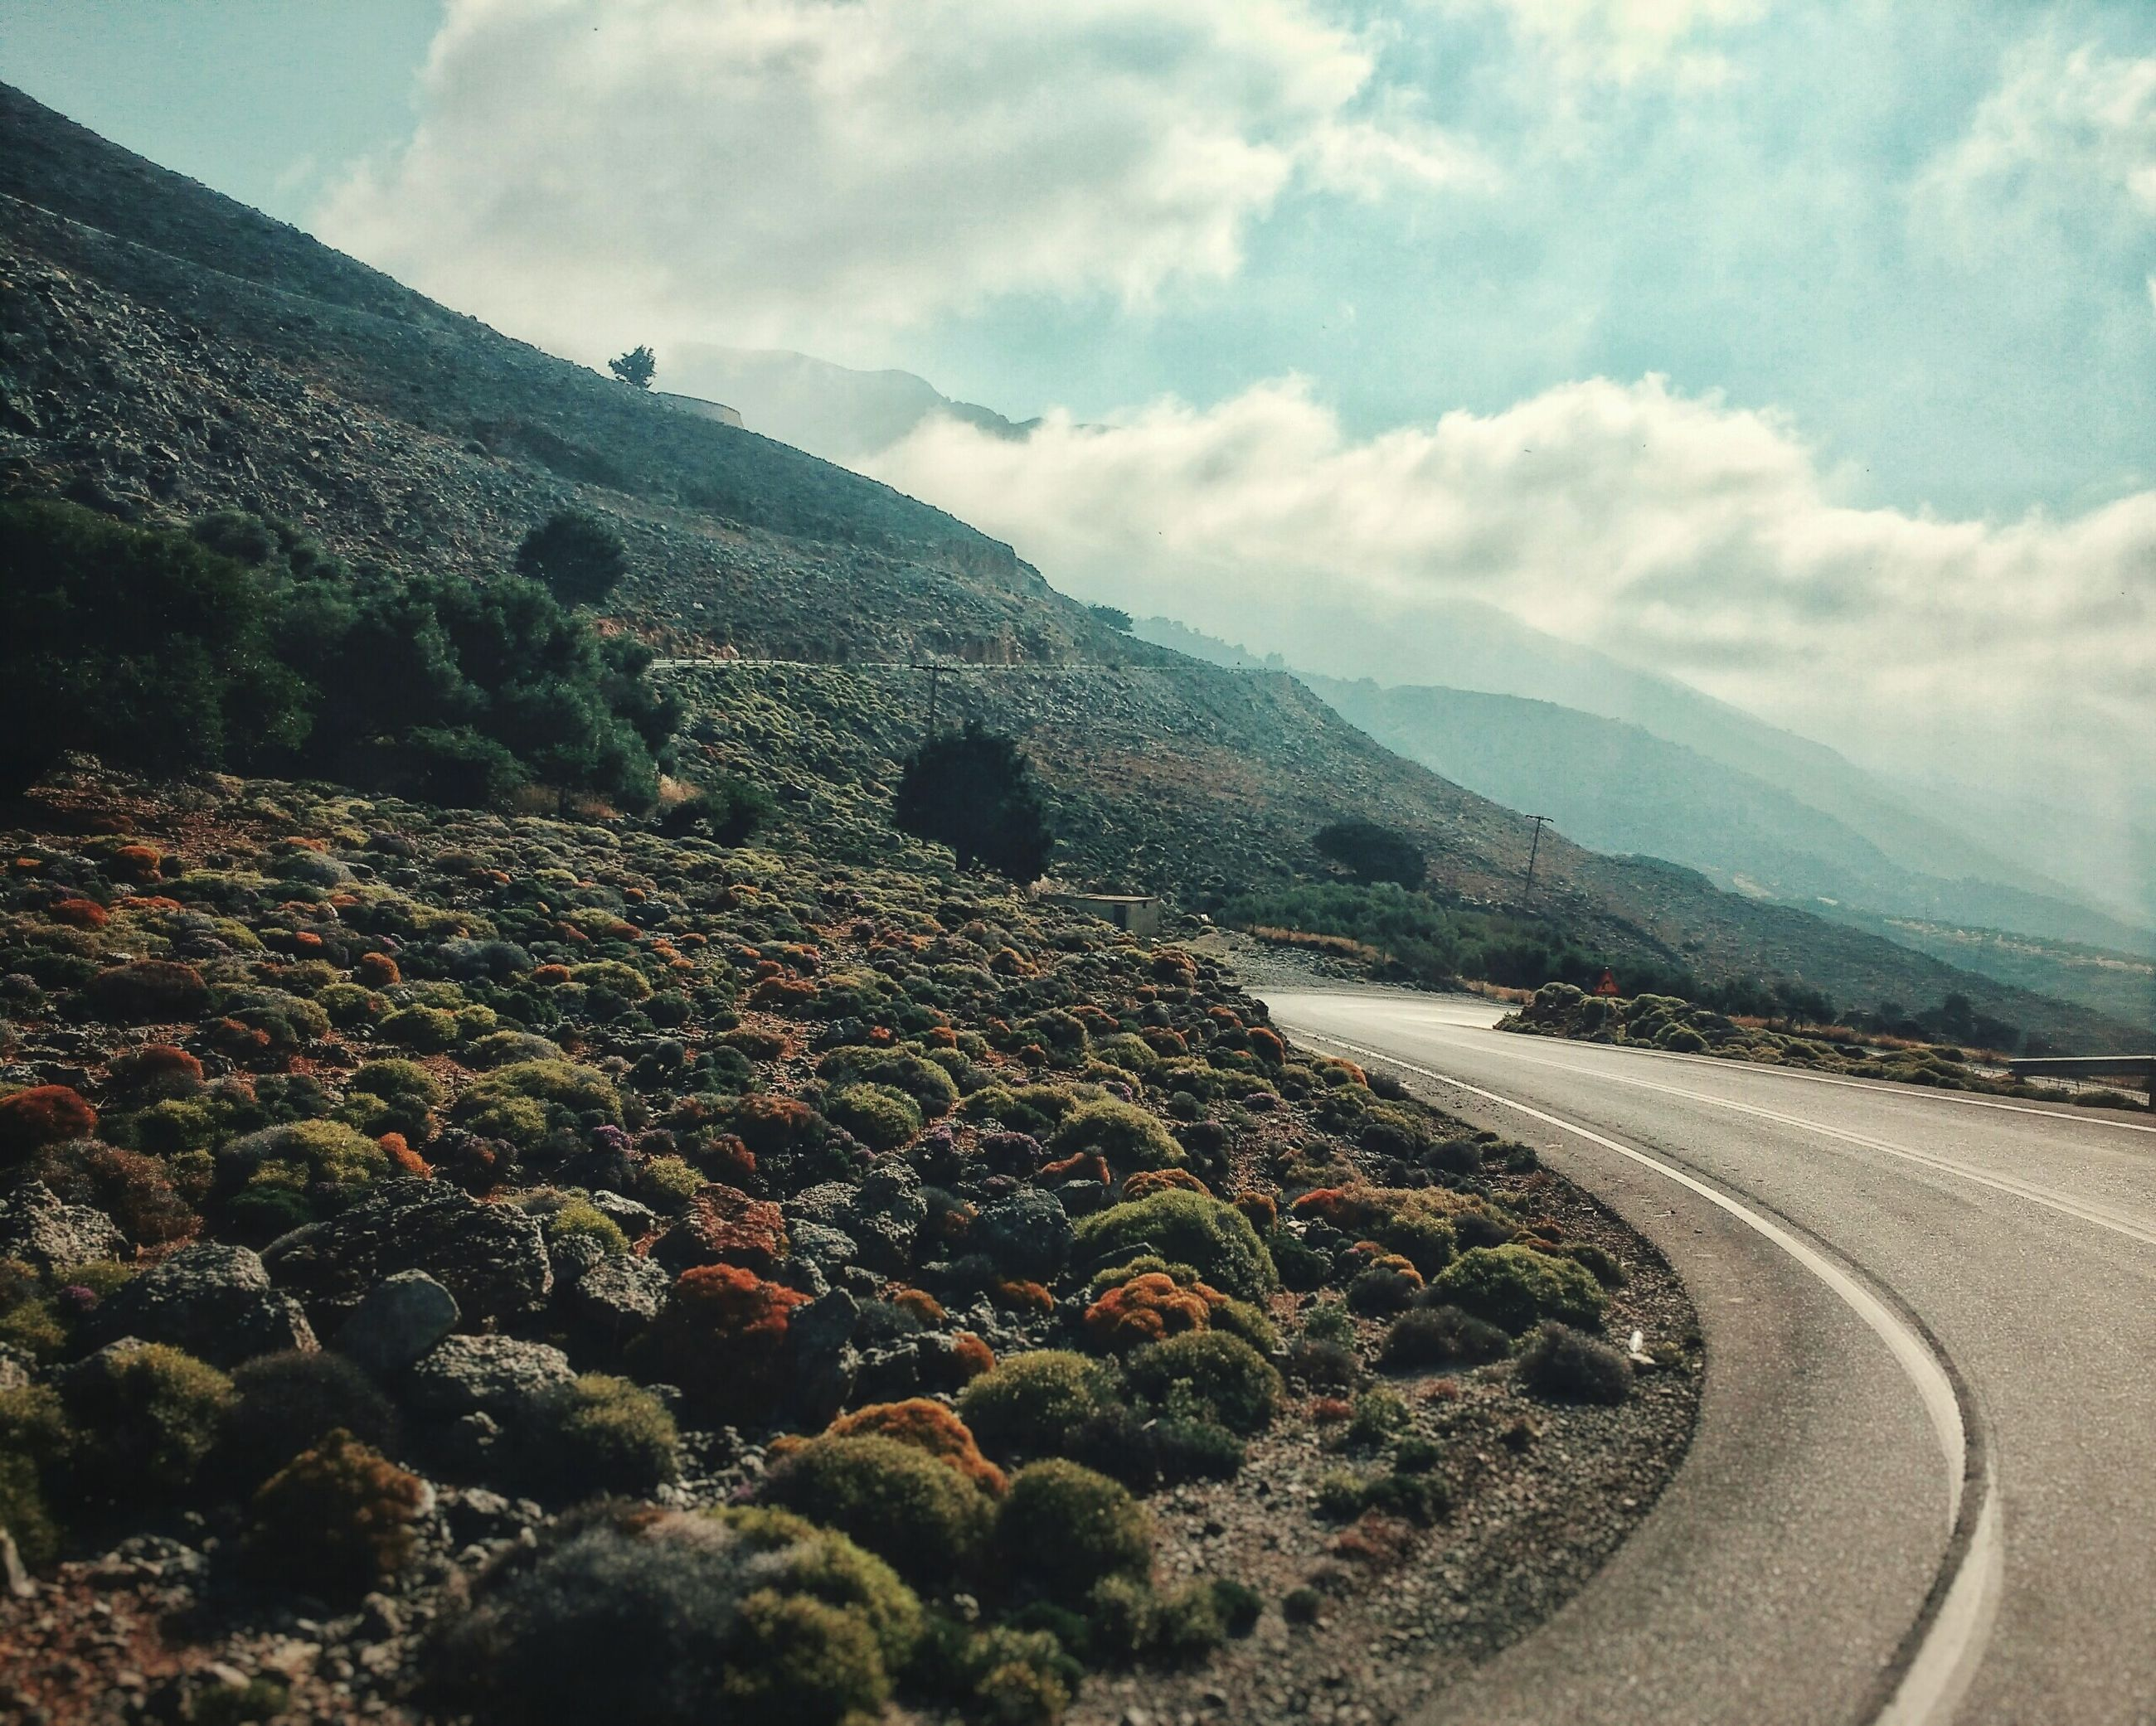 mountain, road, landscape, no people, sky, day, nature, mountain range, outdoors, scenics, tranquil scene, transportation, beauty in nature, winding road, pebble beach